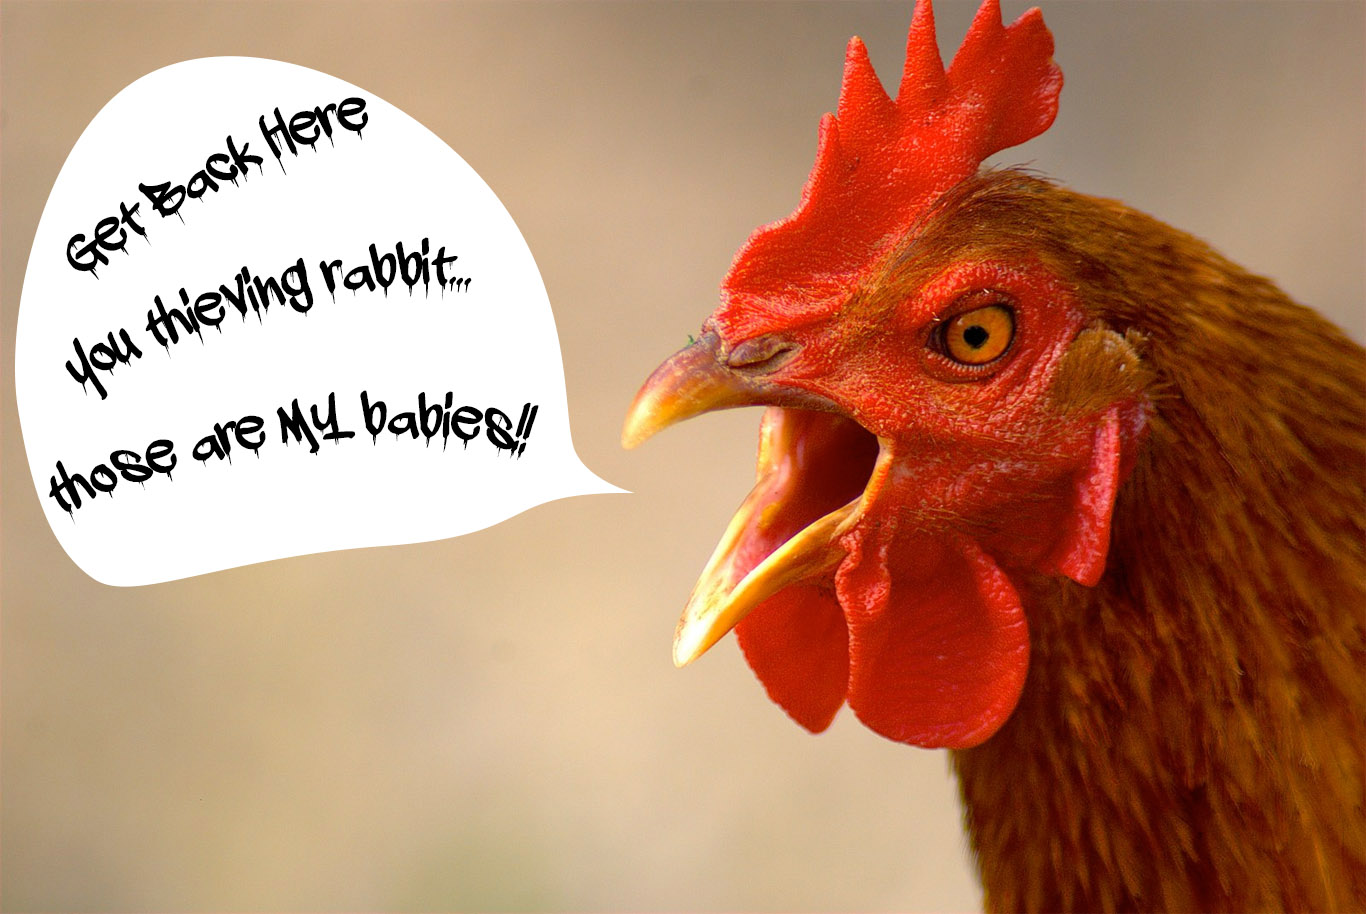 Funny Chicken Quotes: Rooster Quotes And Sayings. QuotesGram